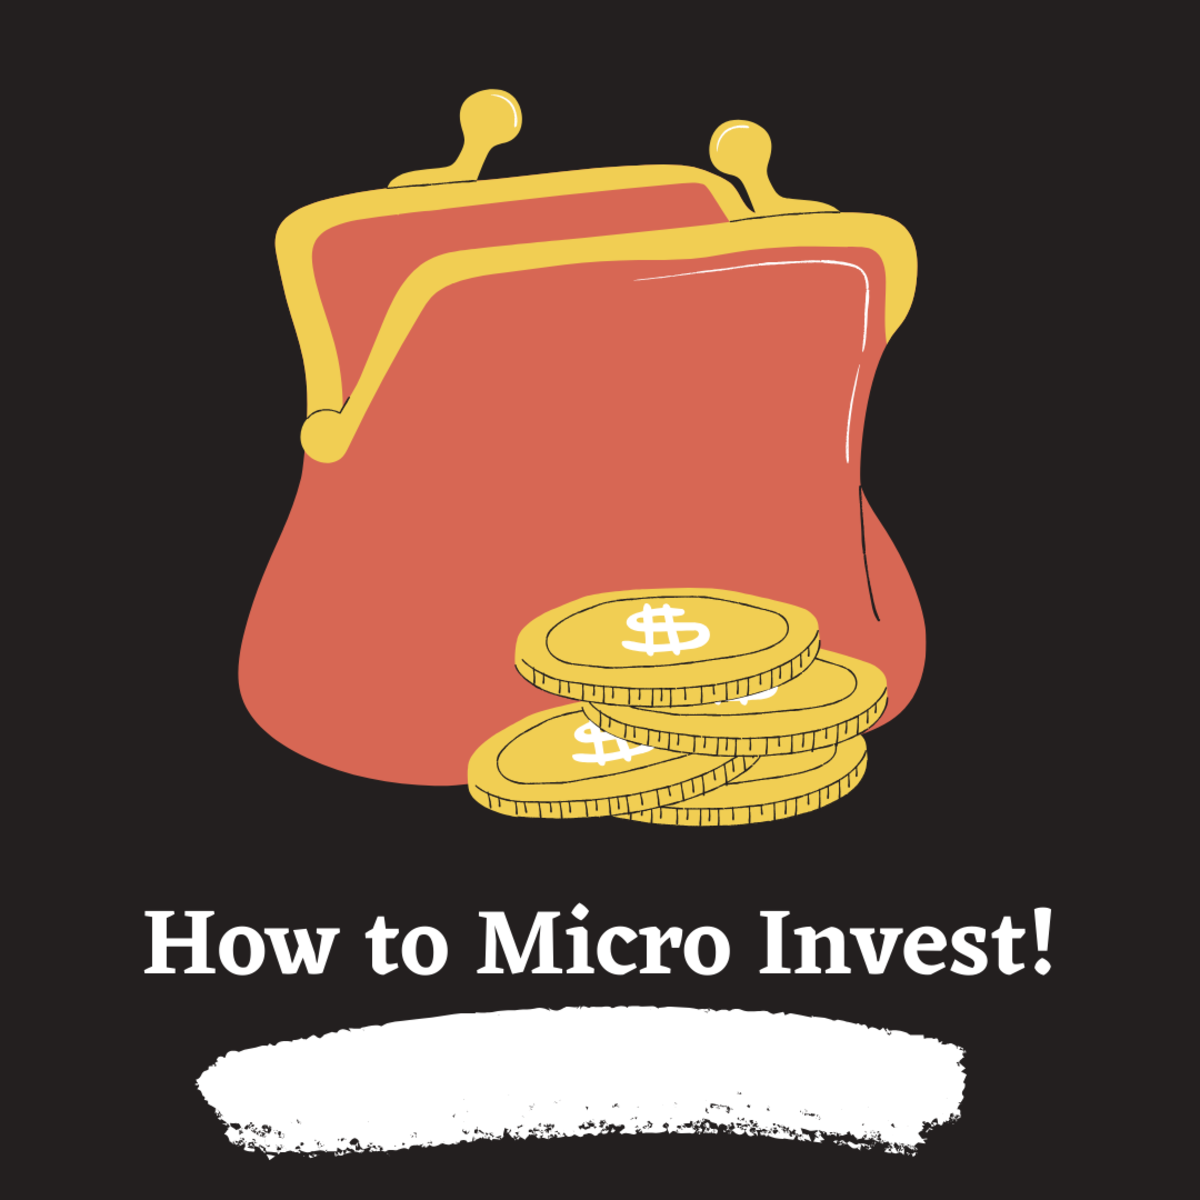 Micro investing can be a great way to make money. Read on to learn the tips and tricks.